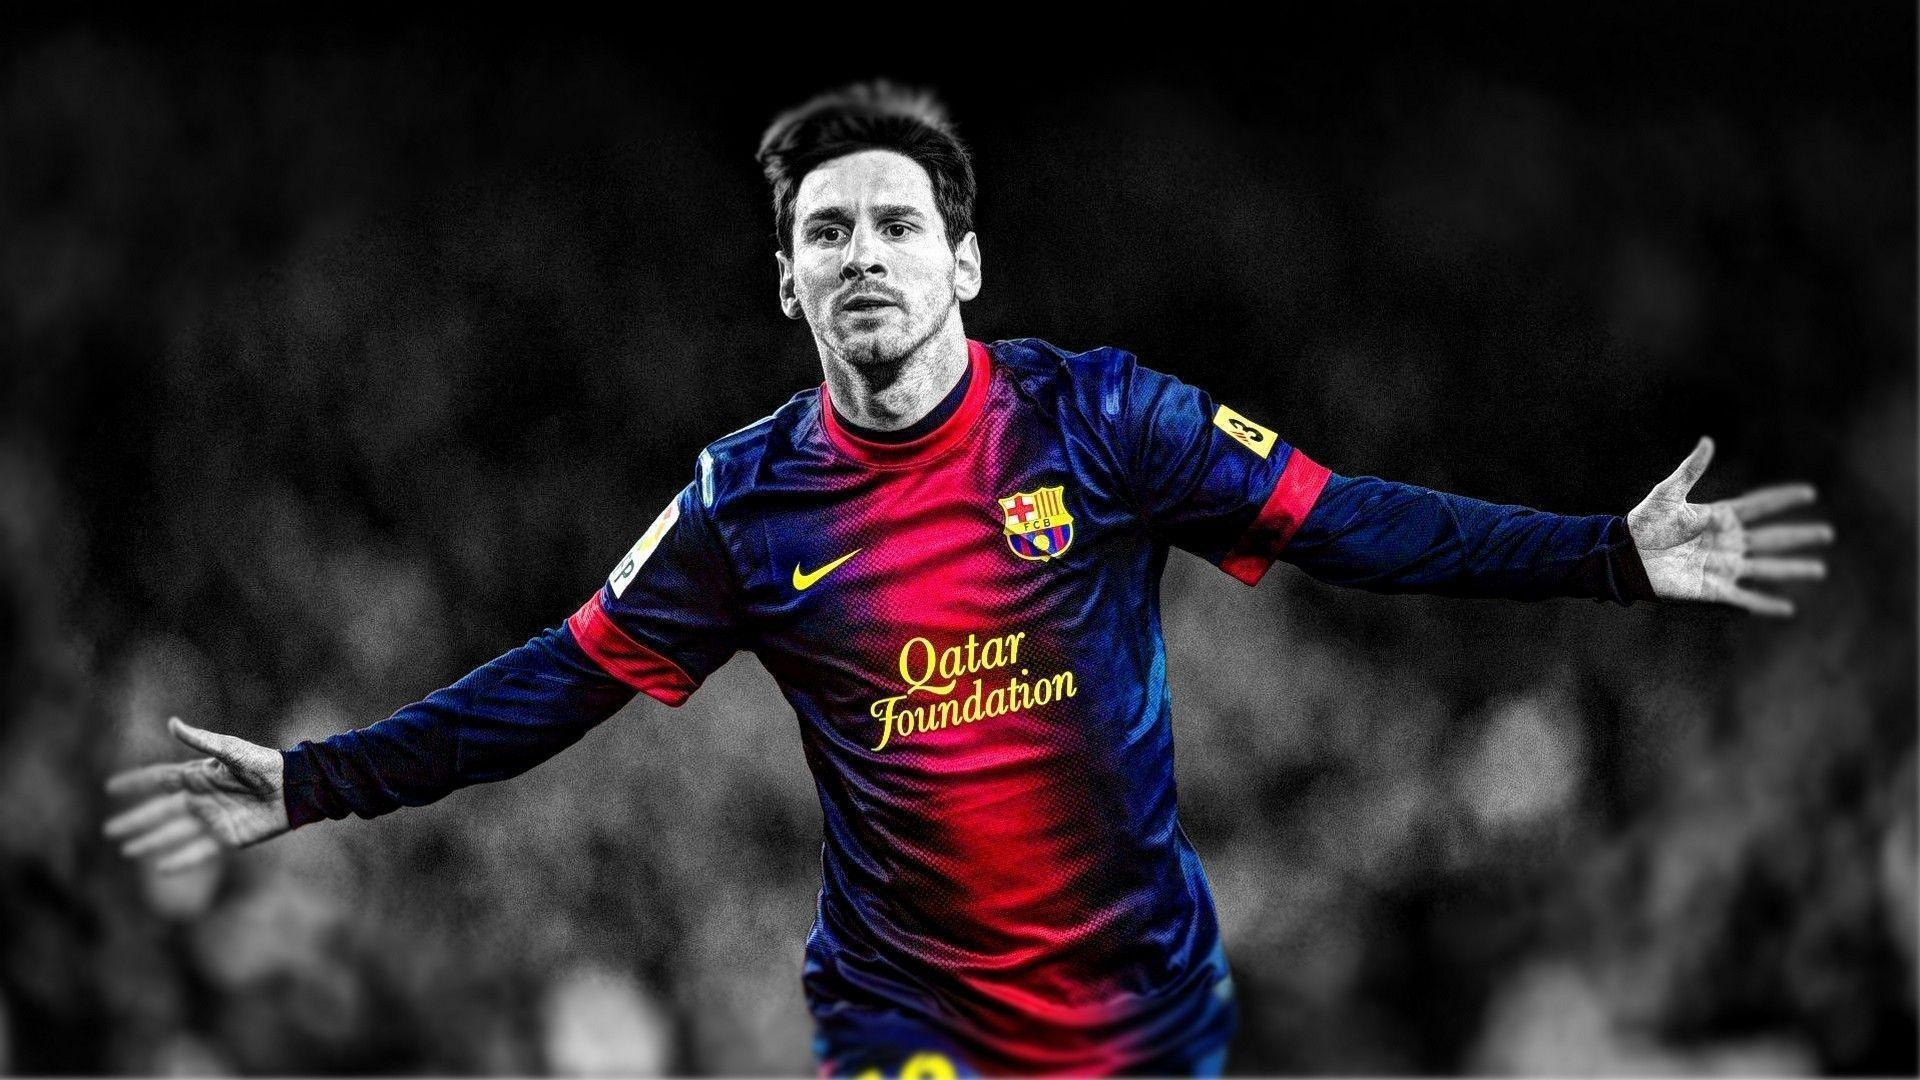 Wallpapers Of Messi - Wallpaper Cave